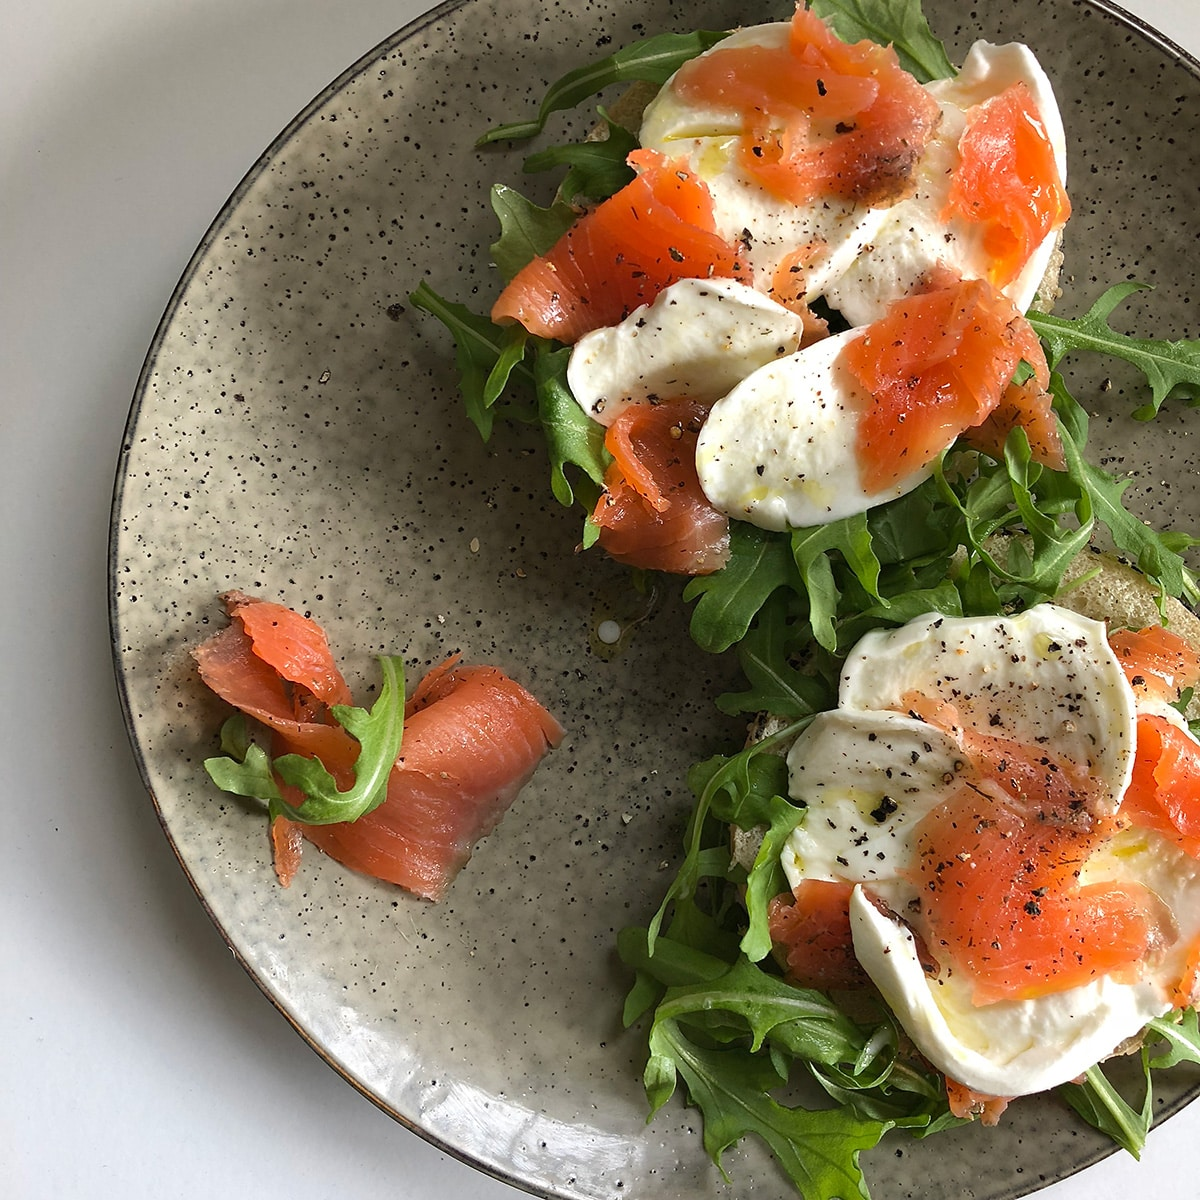 Mozzarella, Smoked Salmon Bagels